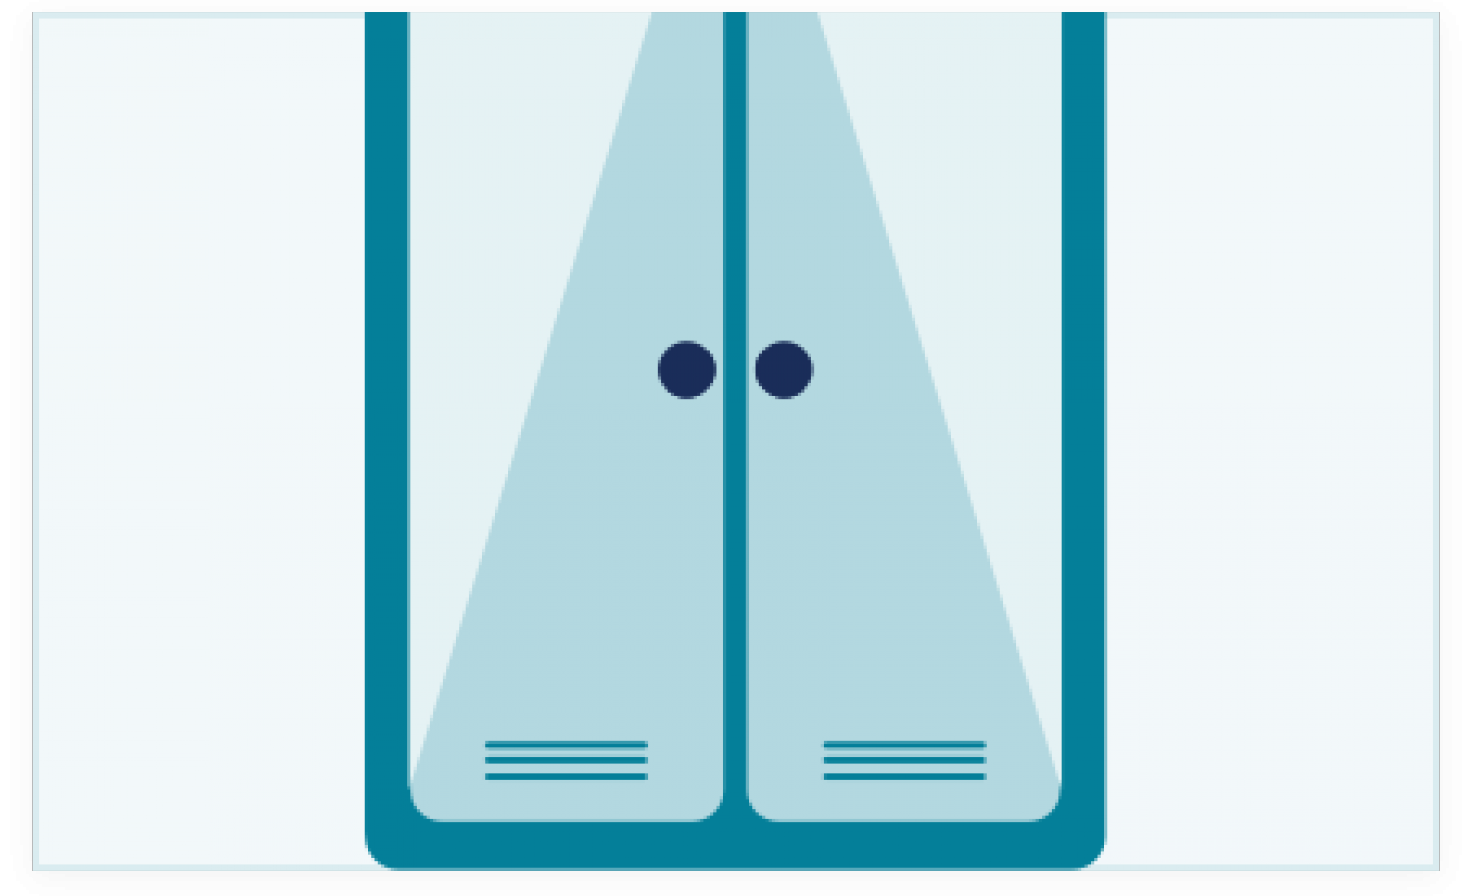 Diagram of a cupboard